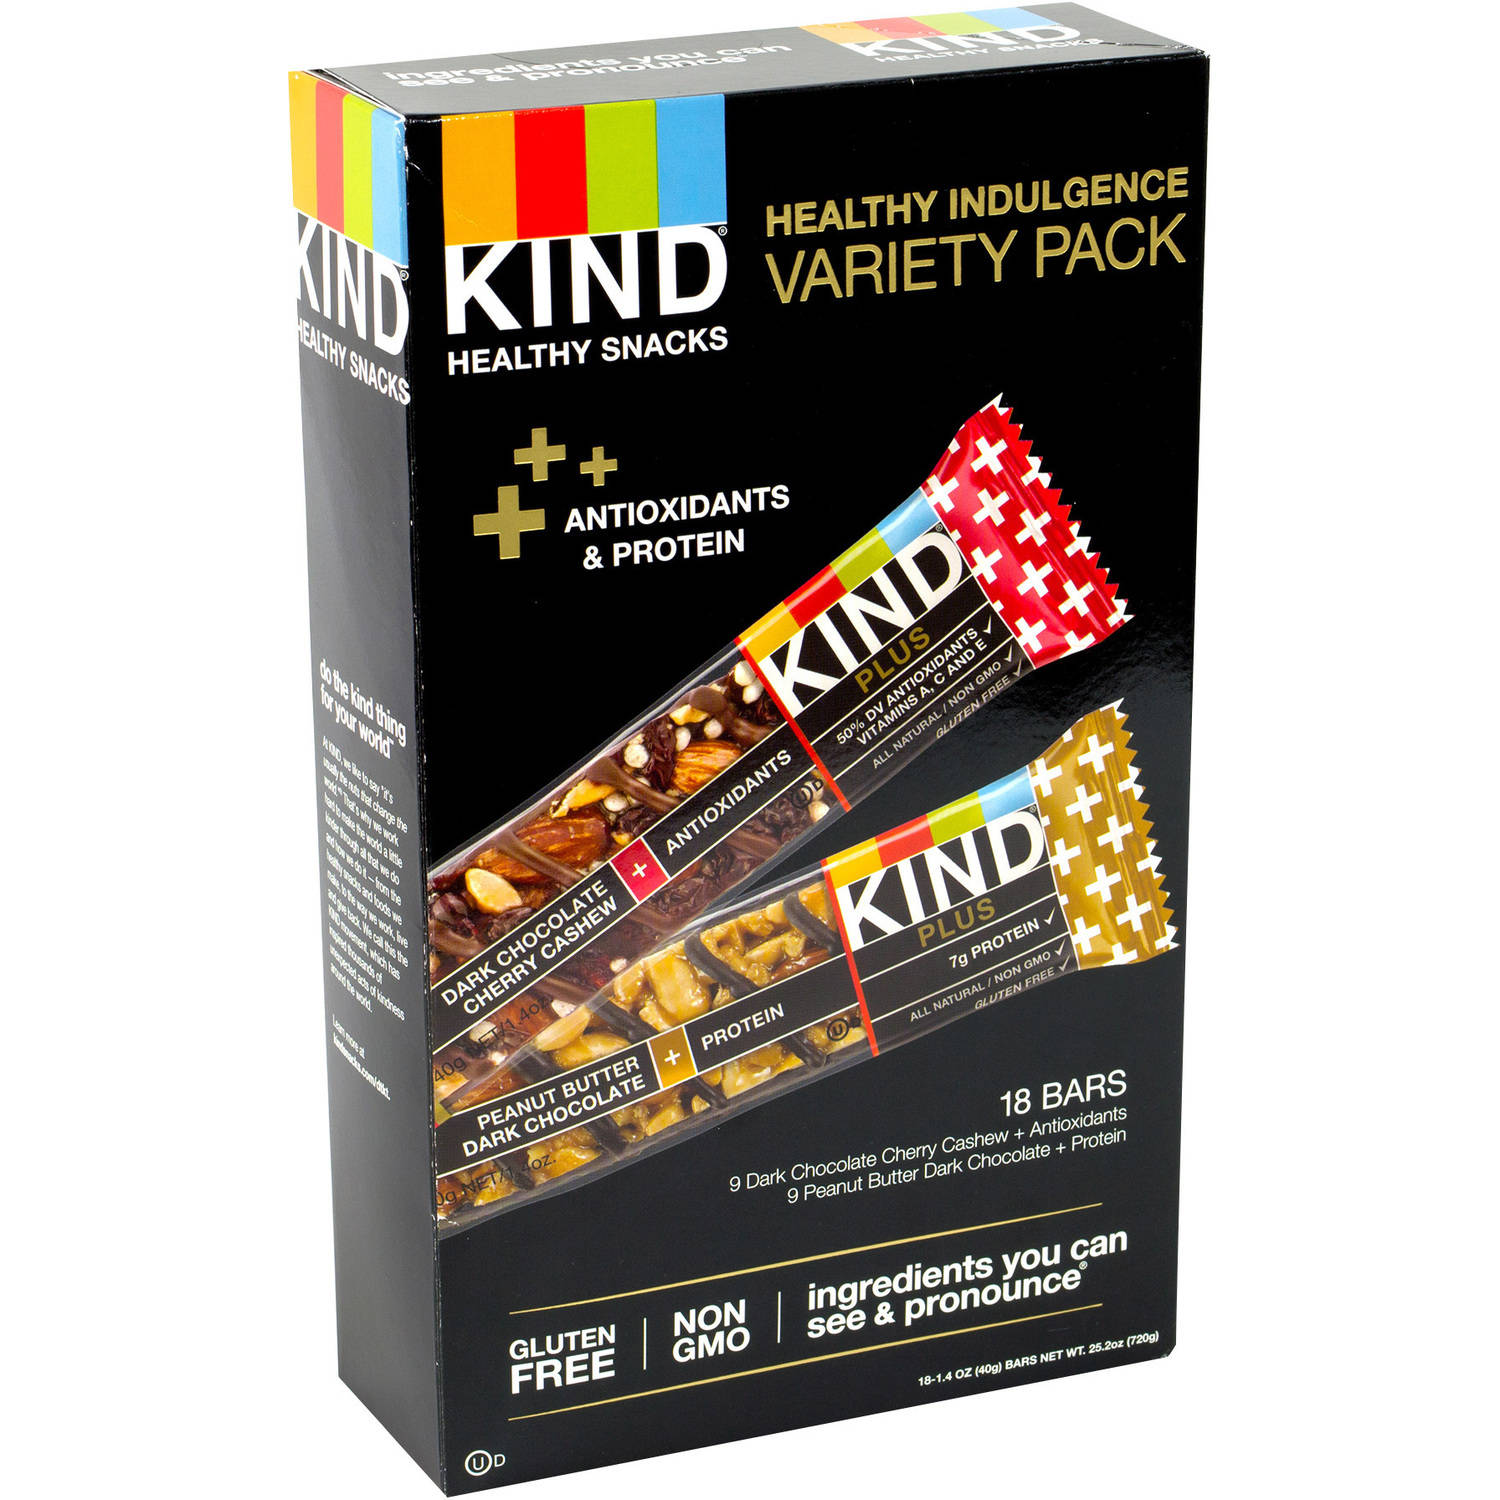 Kind Plus Healthy Indulgence Antioxidants & Protein Bar Variety Pack, 1.4 oz, 18 count